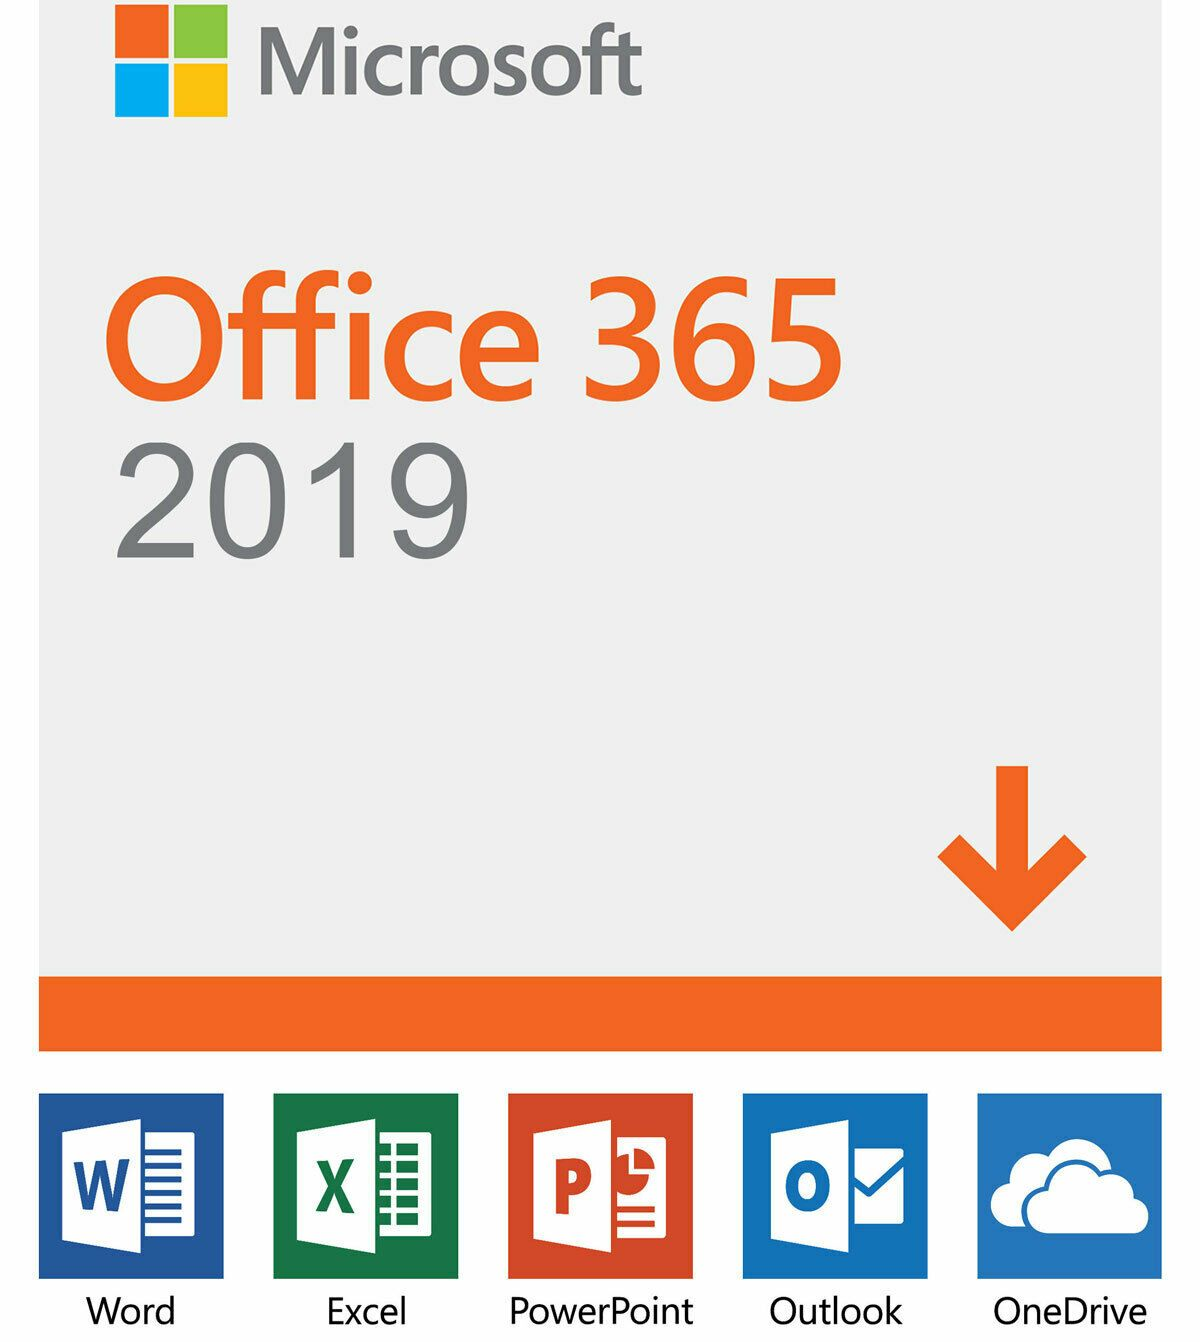 Office 2019 Pro Plus 365 Lifetime License Windows Mac Mobile 5tb Storage Wow Offers Online Office 365 Personal Microsoft Office Microsoft